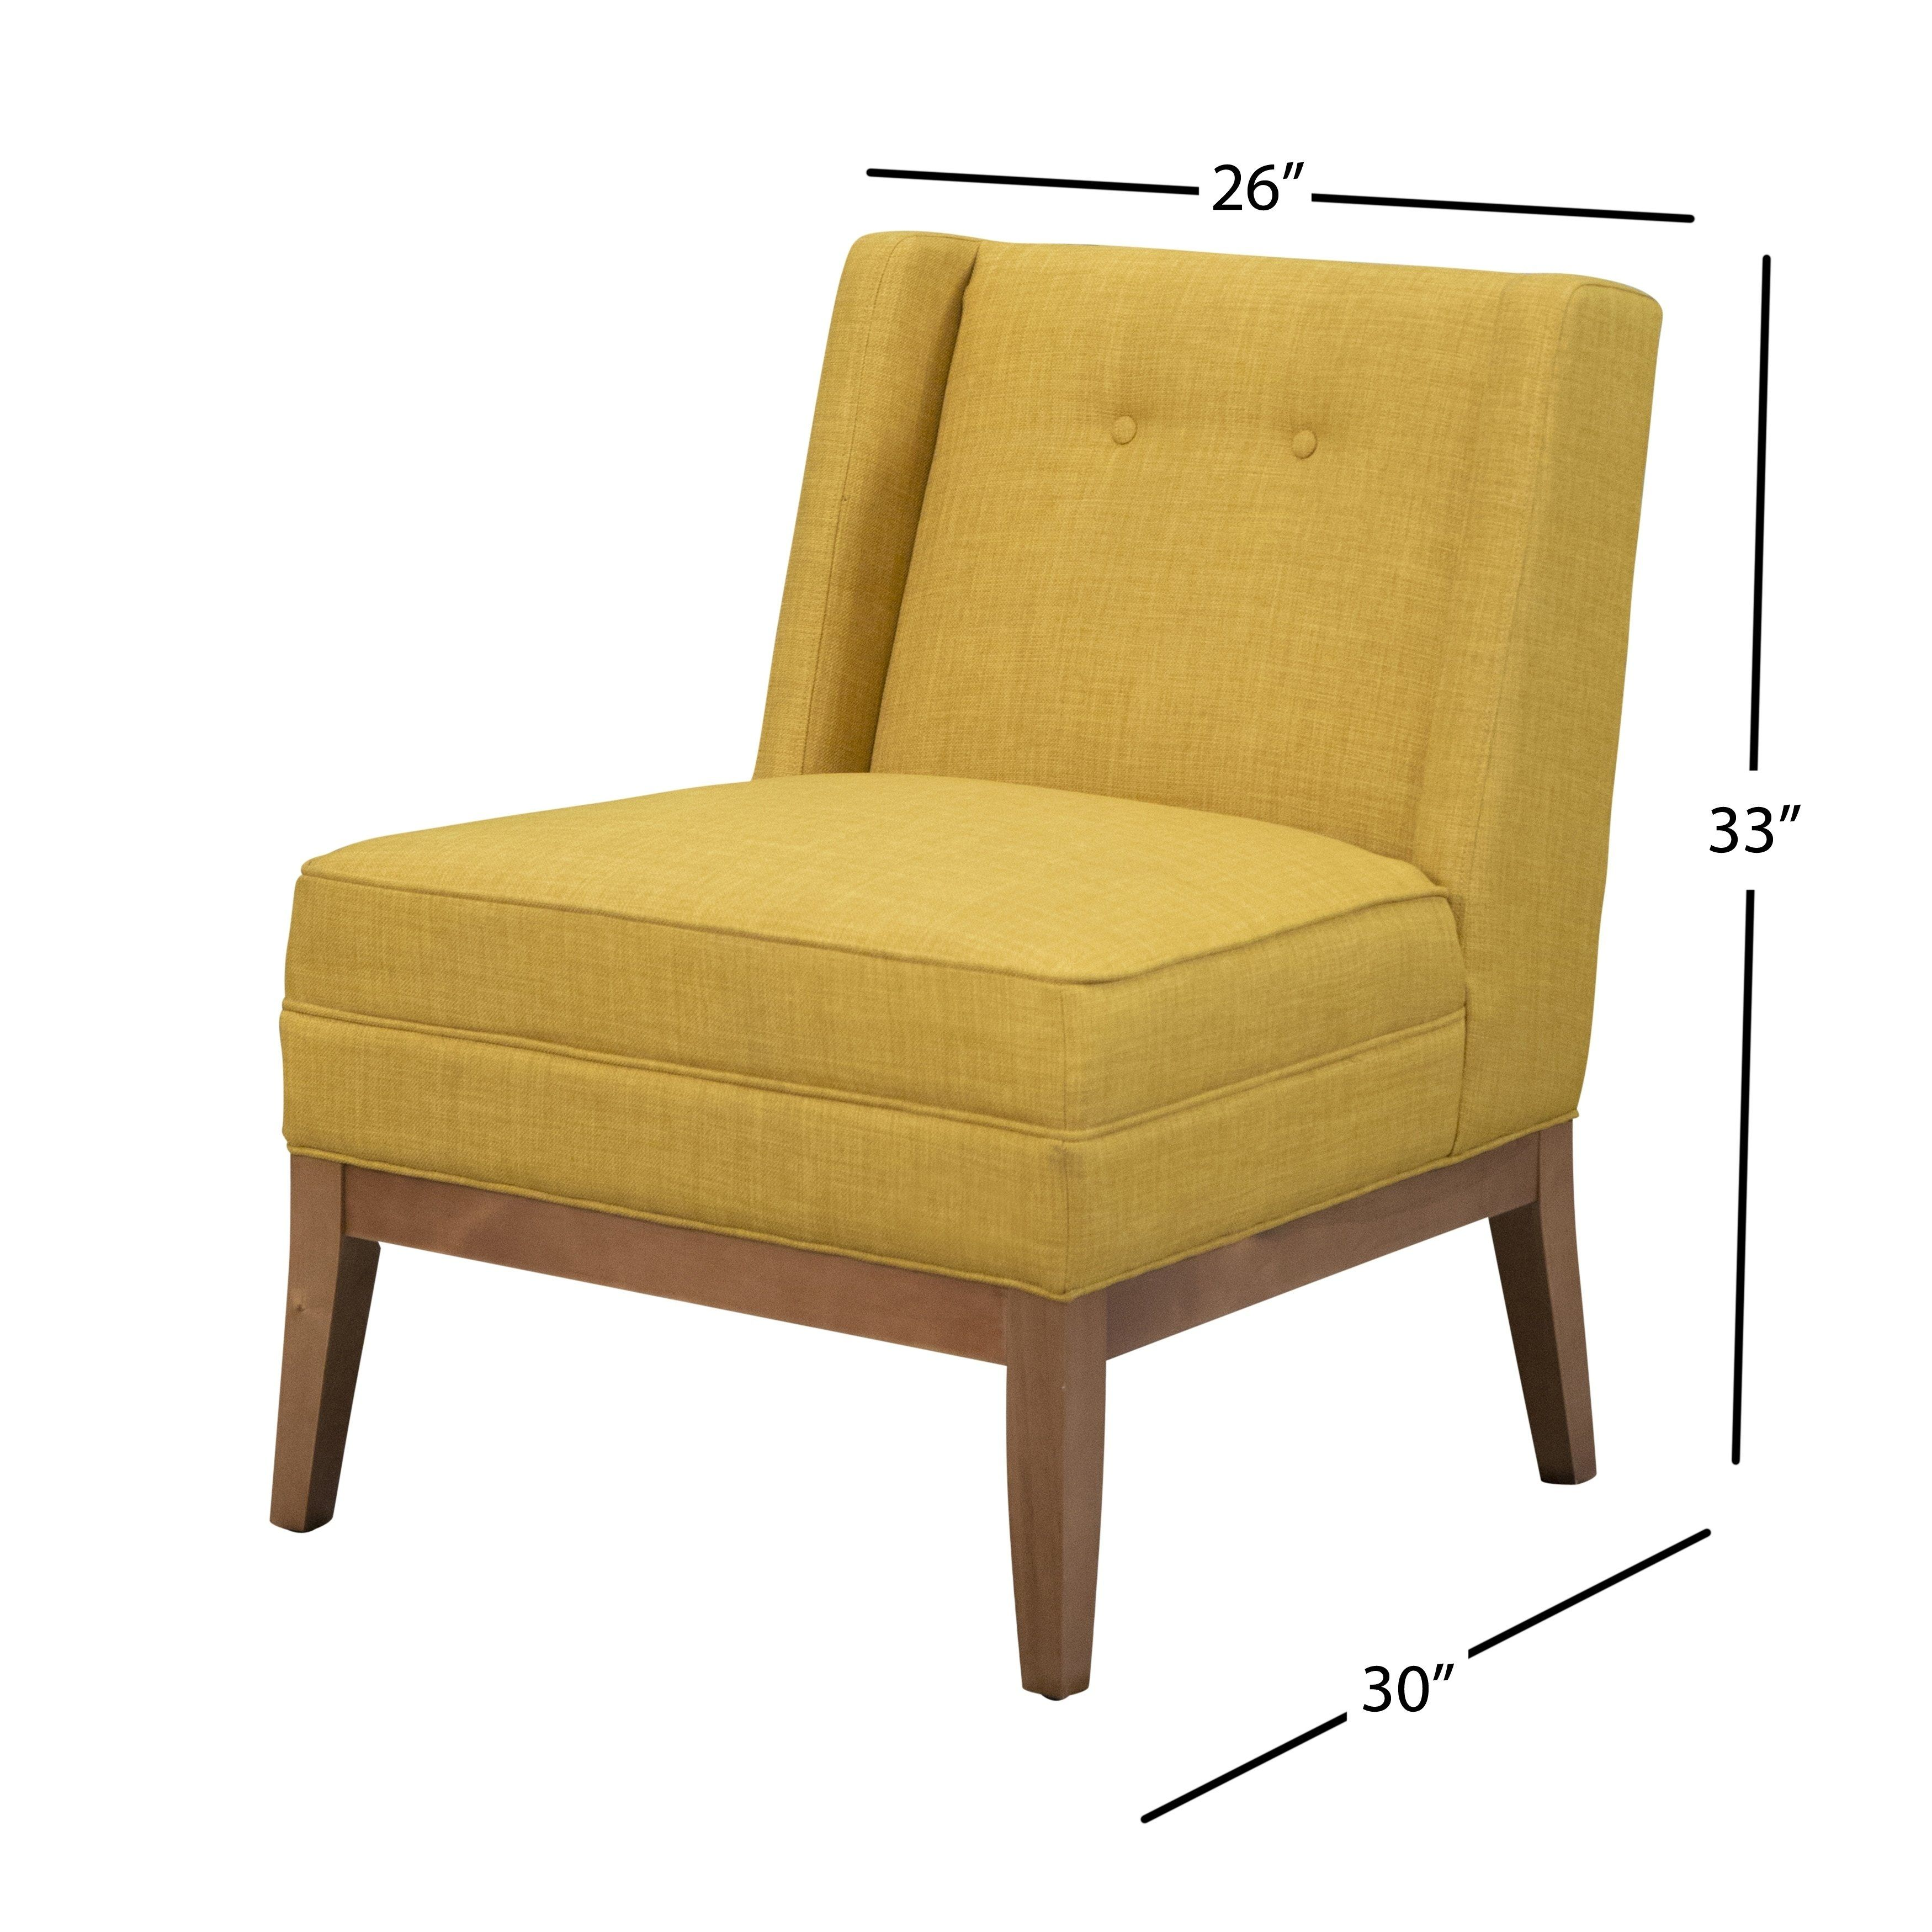 Magnificent Abbyson Haynes Mid Century Accent Chair Me For Mom In 2019 Inzonedesignstudio Interior Chair Design Inzonedesignstudiocom